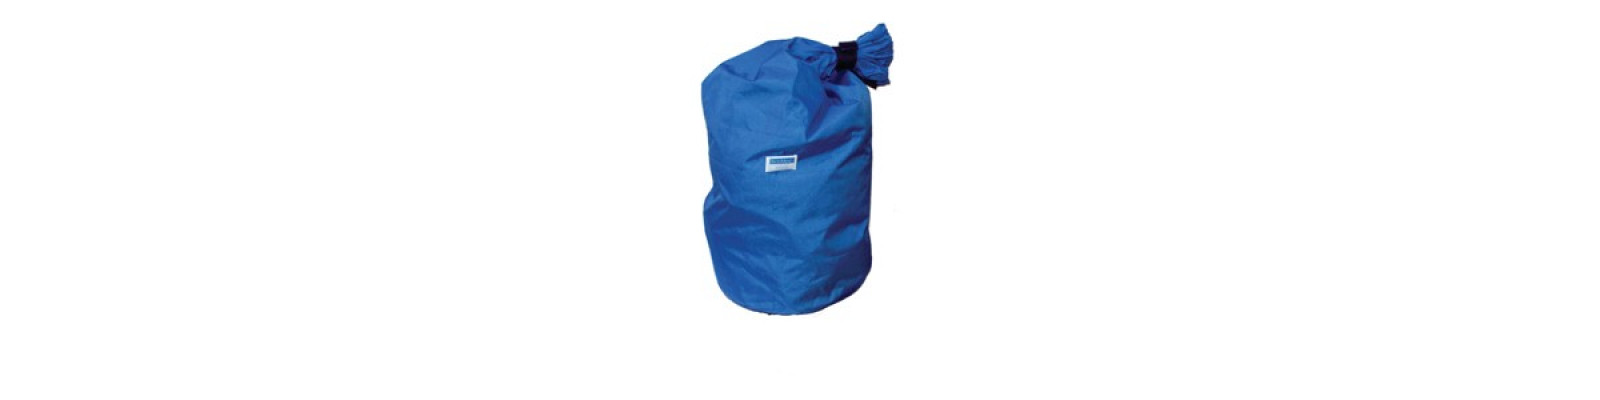 Strongman equipment - Sandbags